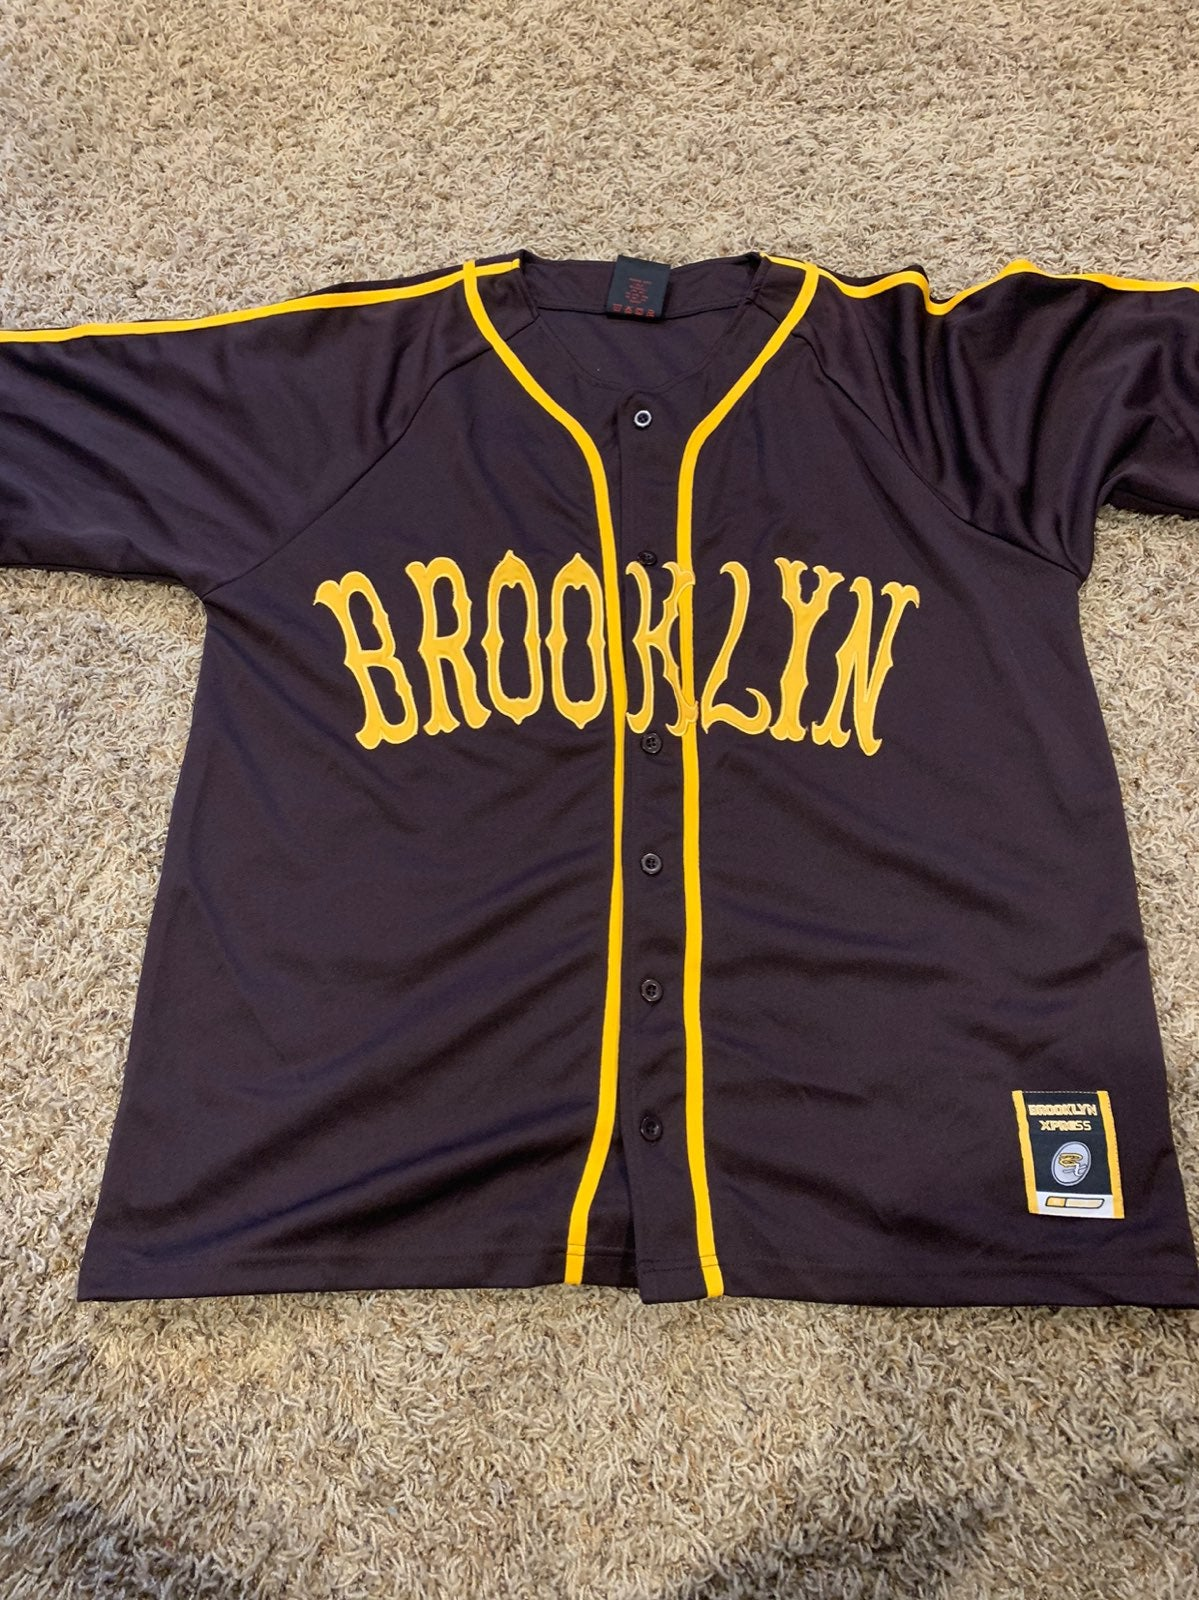 Vintage Brooklyn Express Baseball Jersey